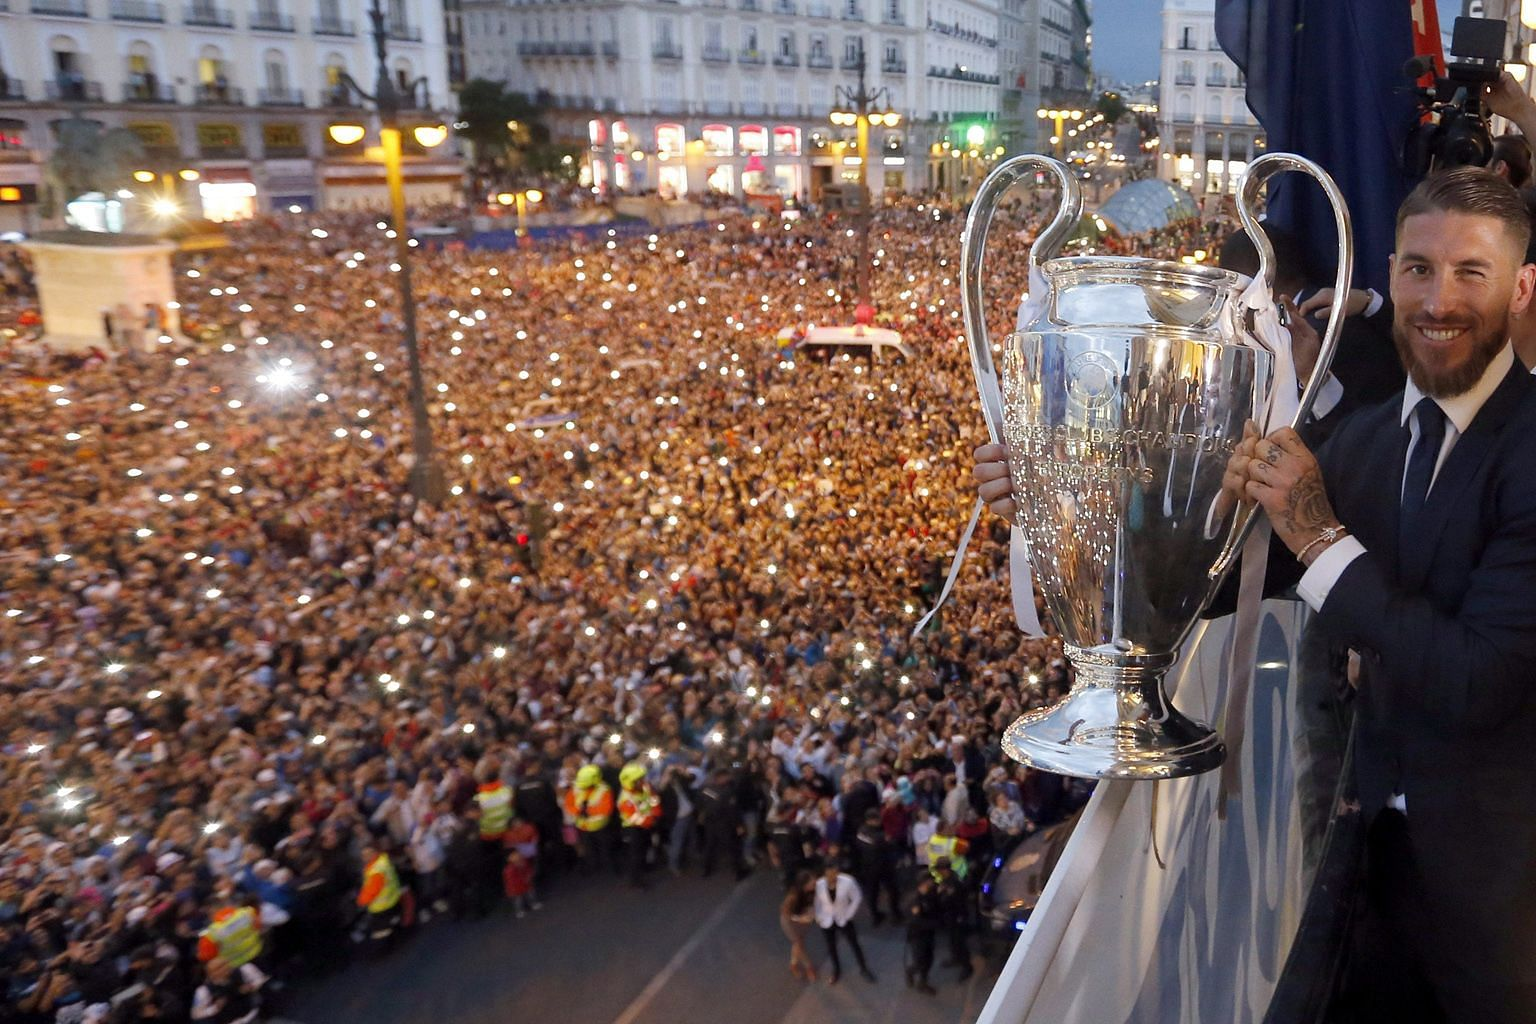 Real skipper Sergio Ramos holding the Champions League trophy on the balcony of the Madrid Autonomous Government's headquarters, as thousands of frenzied fans cheer during the celebrations.